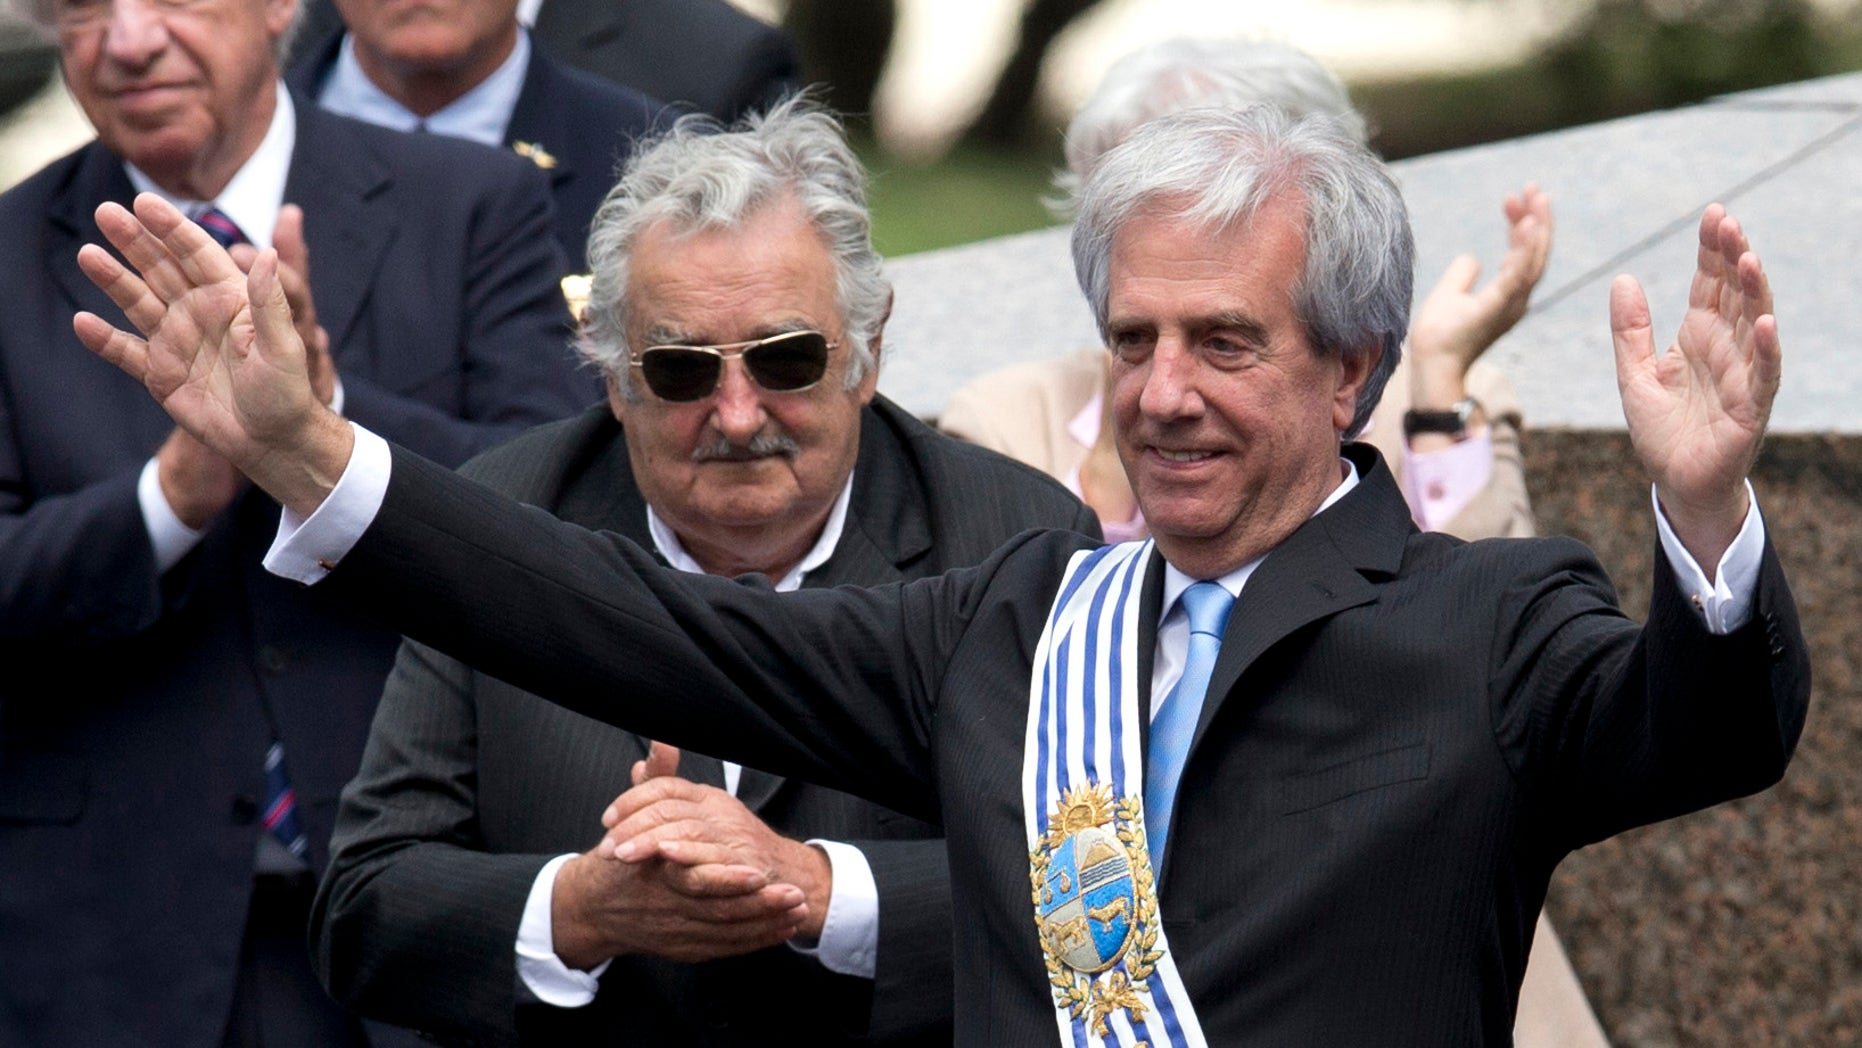 Uruguay's new President Tabare Vazquez waves to the crowd wearing the presidential sash as outgoing President Jose Mujica looks on, behind center, during his inauguration ceremony at Independence Plaza in Montevideo, Uruguay, Sunday, March 1, 2015. (AP Photo/Natacha Pisarenko)